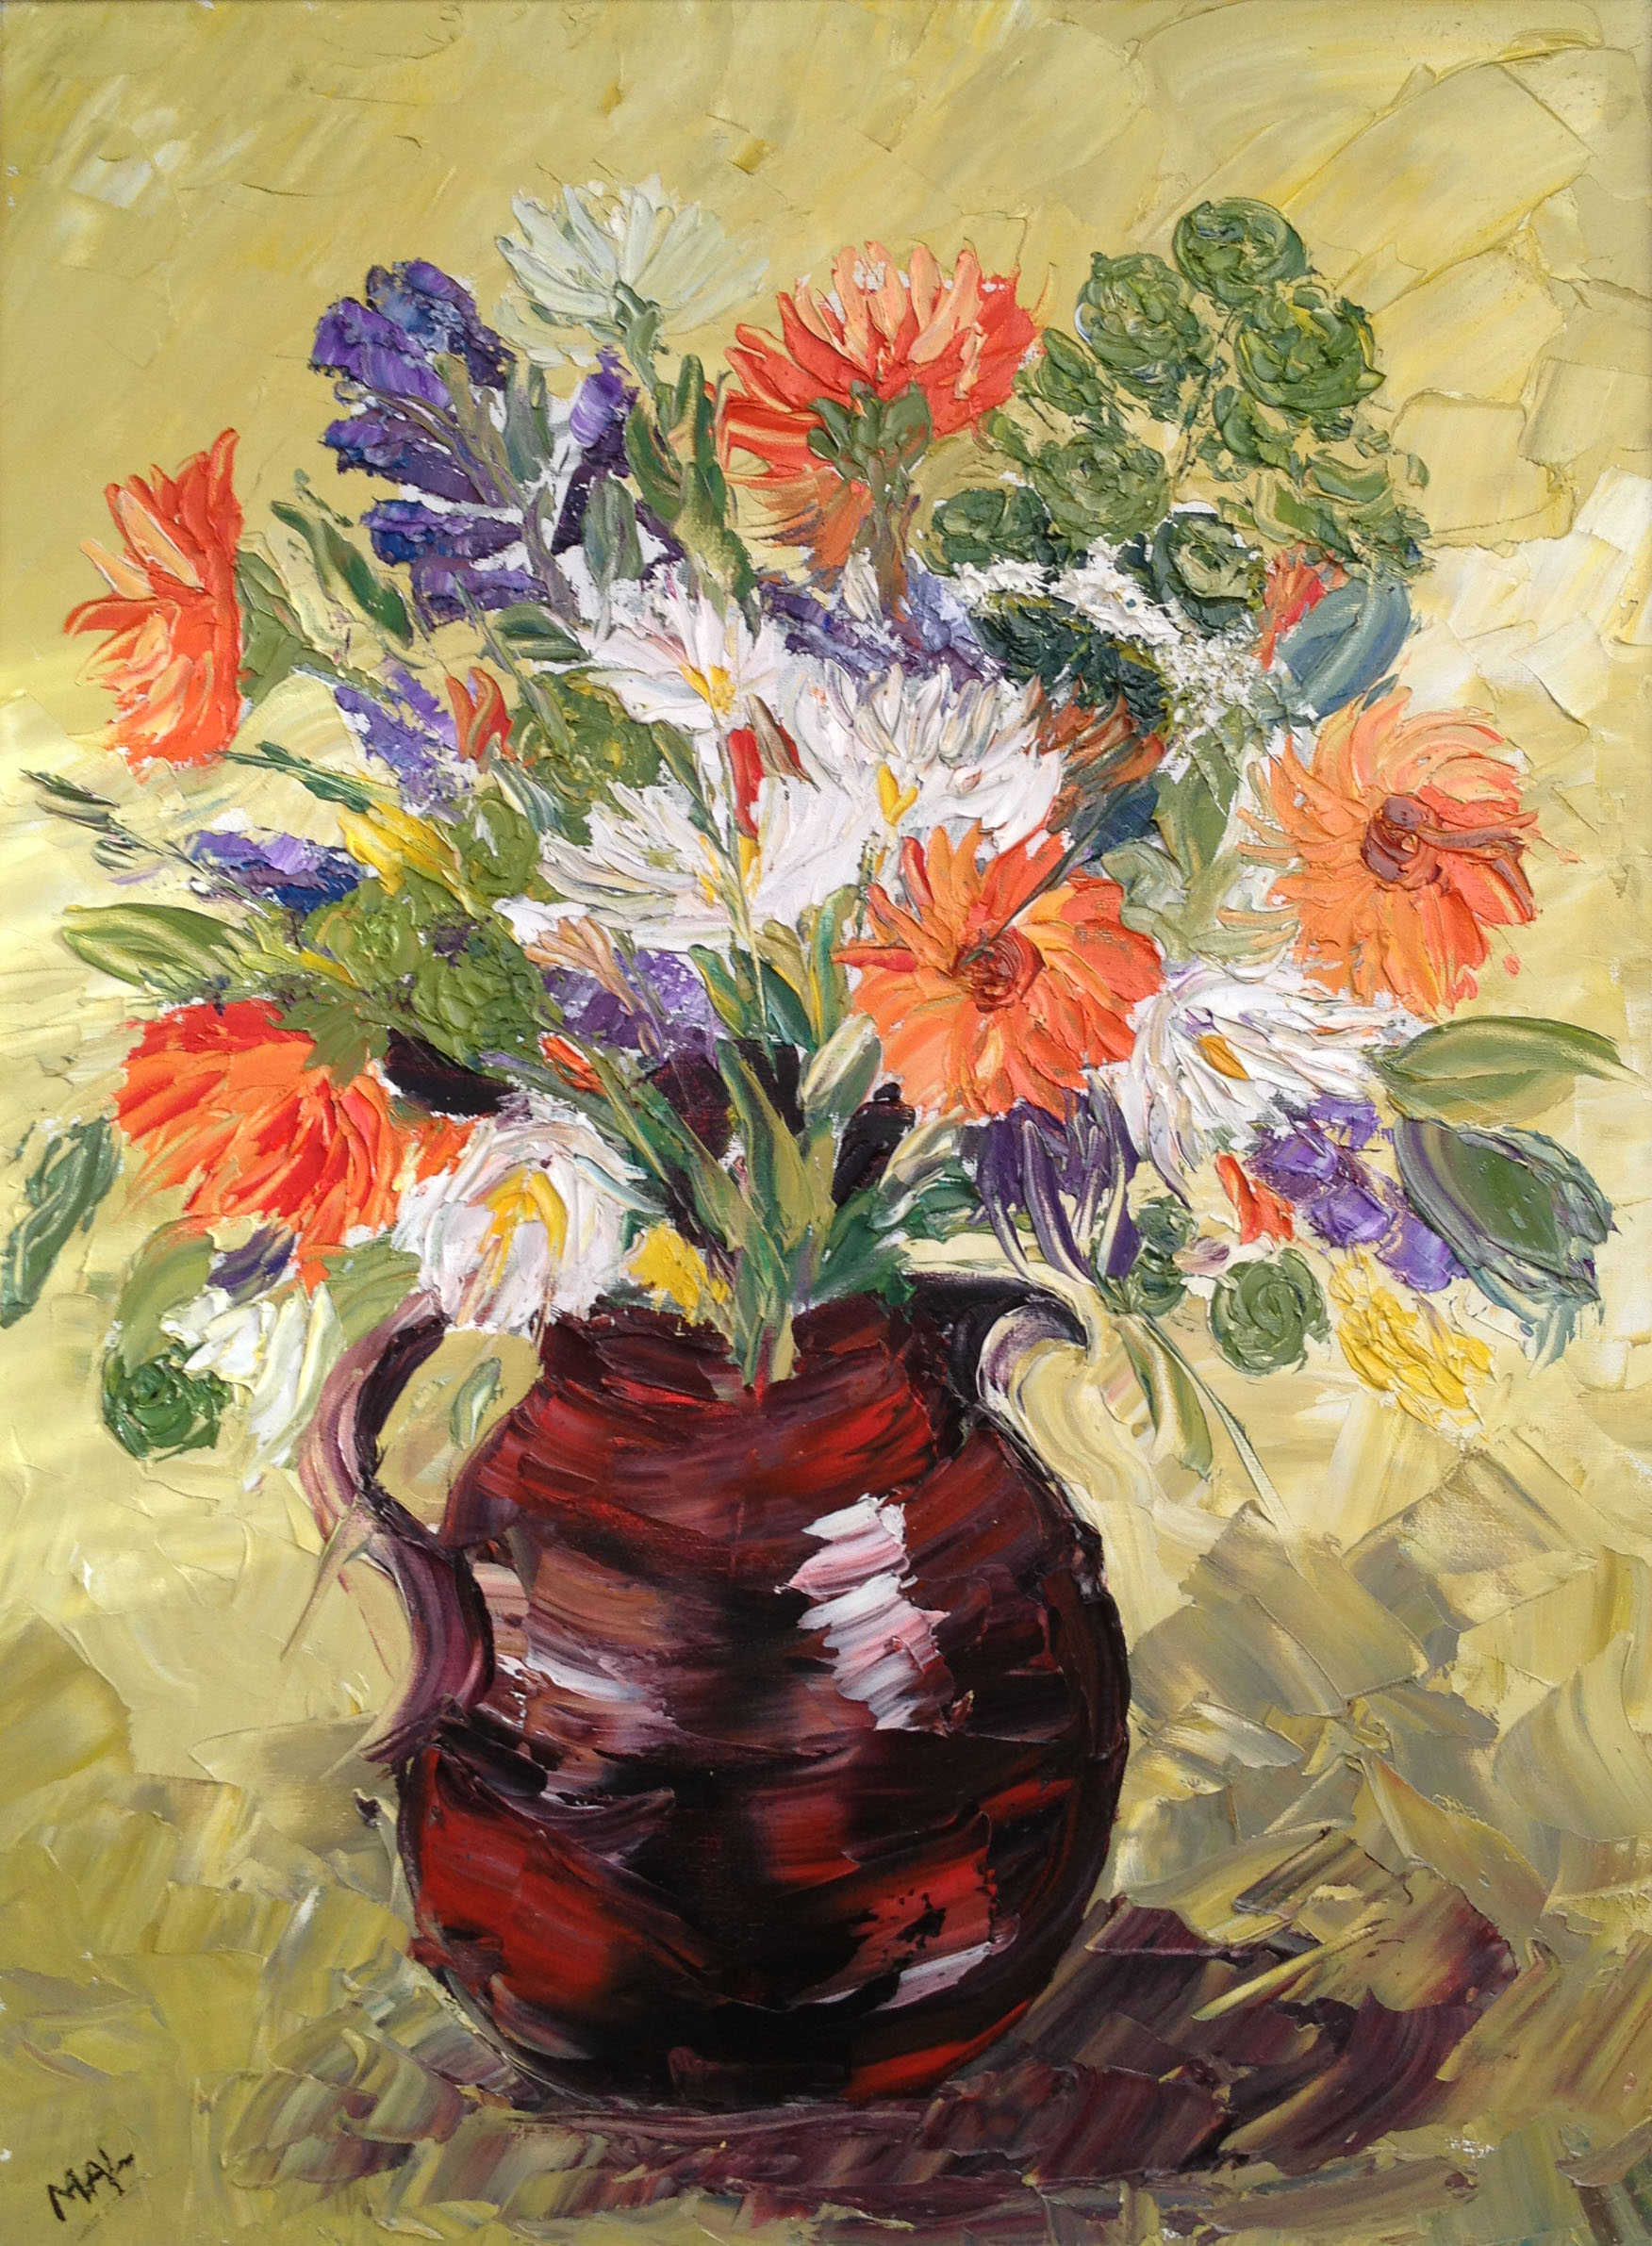 Autumn Flowers - Oil on canvas Knife painting